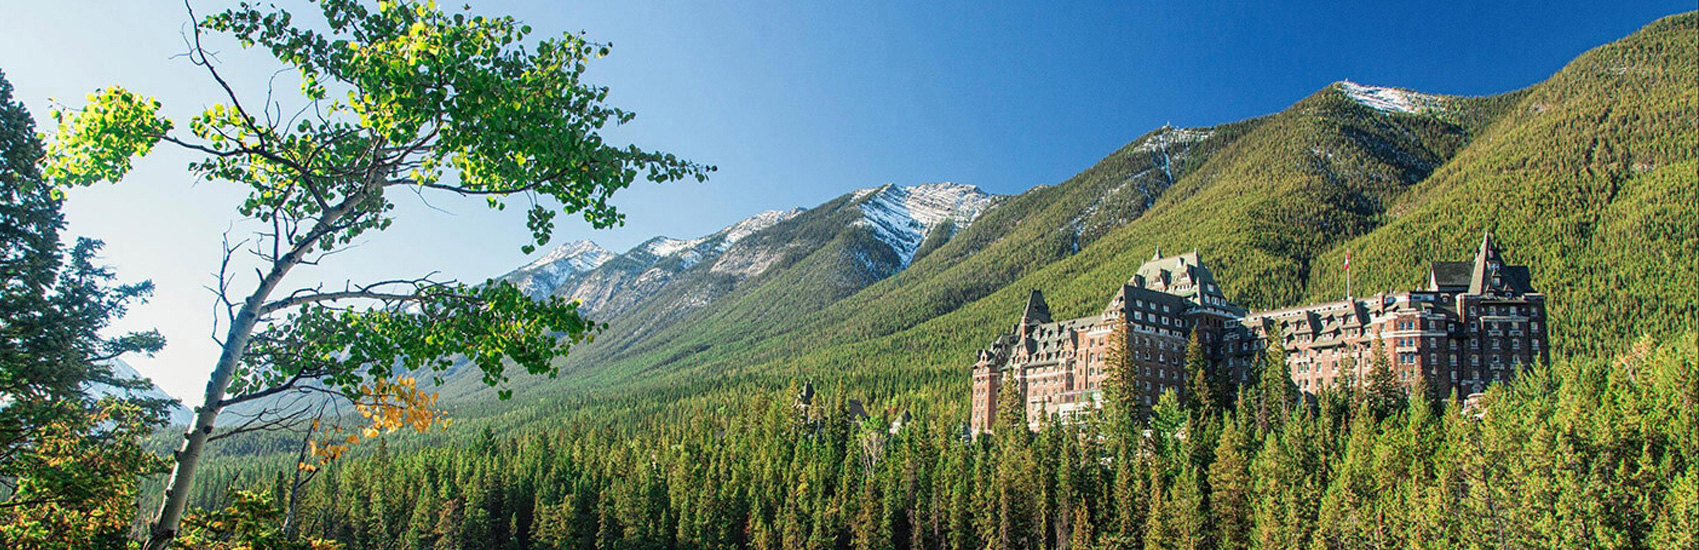 Fairmont Hotels in Canada 0